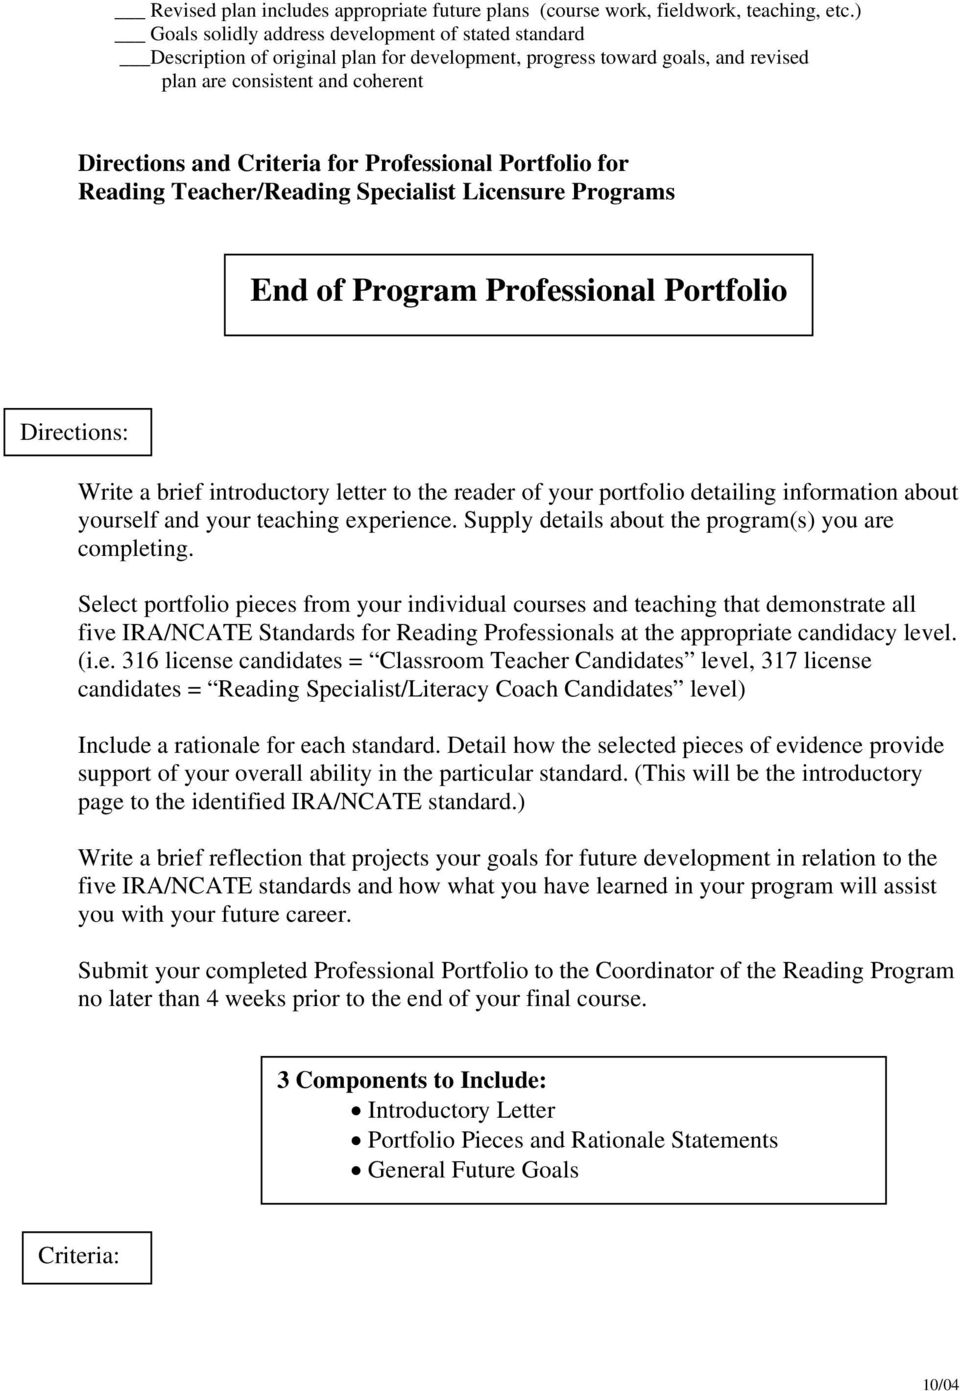 Professional Portfolio for Reading Teacher/Reading Specialist Licensure Programs End of Program Professional Portfolio Directions: Write a brief introductory letter to the reader of your portfolio